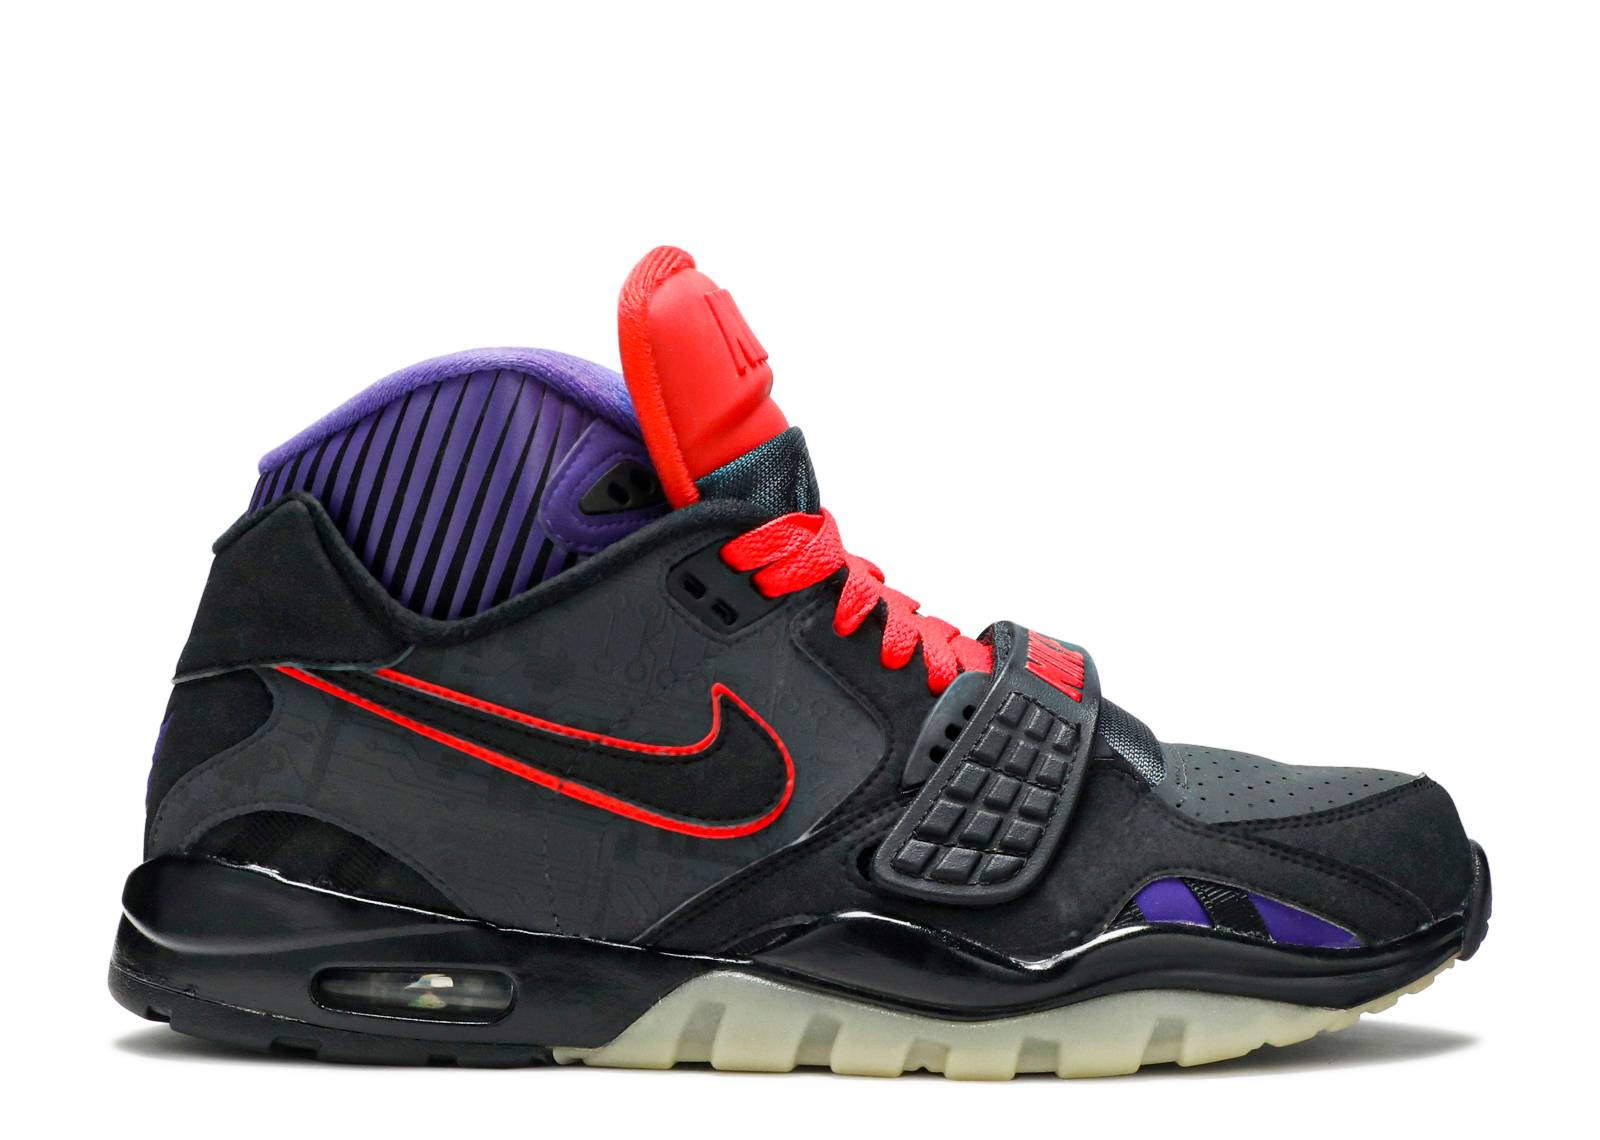 Nike Air Trainer SC 2 II PRM QS Megaton Anthracite Red Purple Nike Air Trainer For Mens and Womens